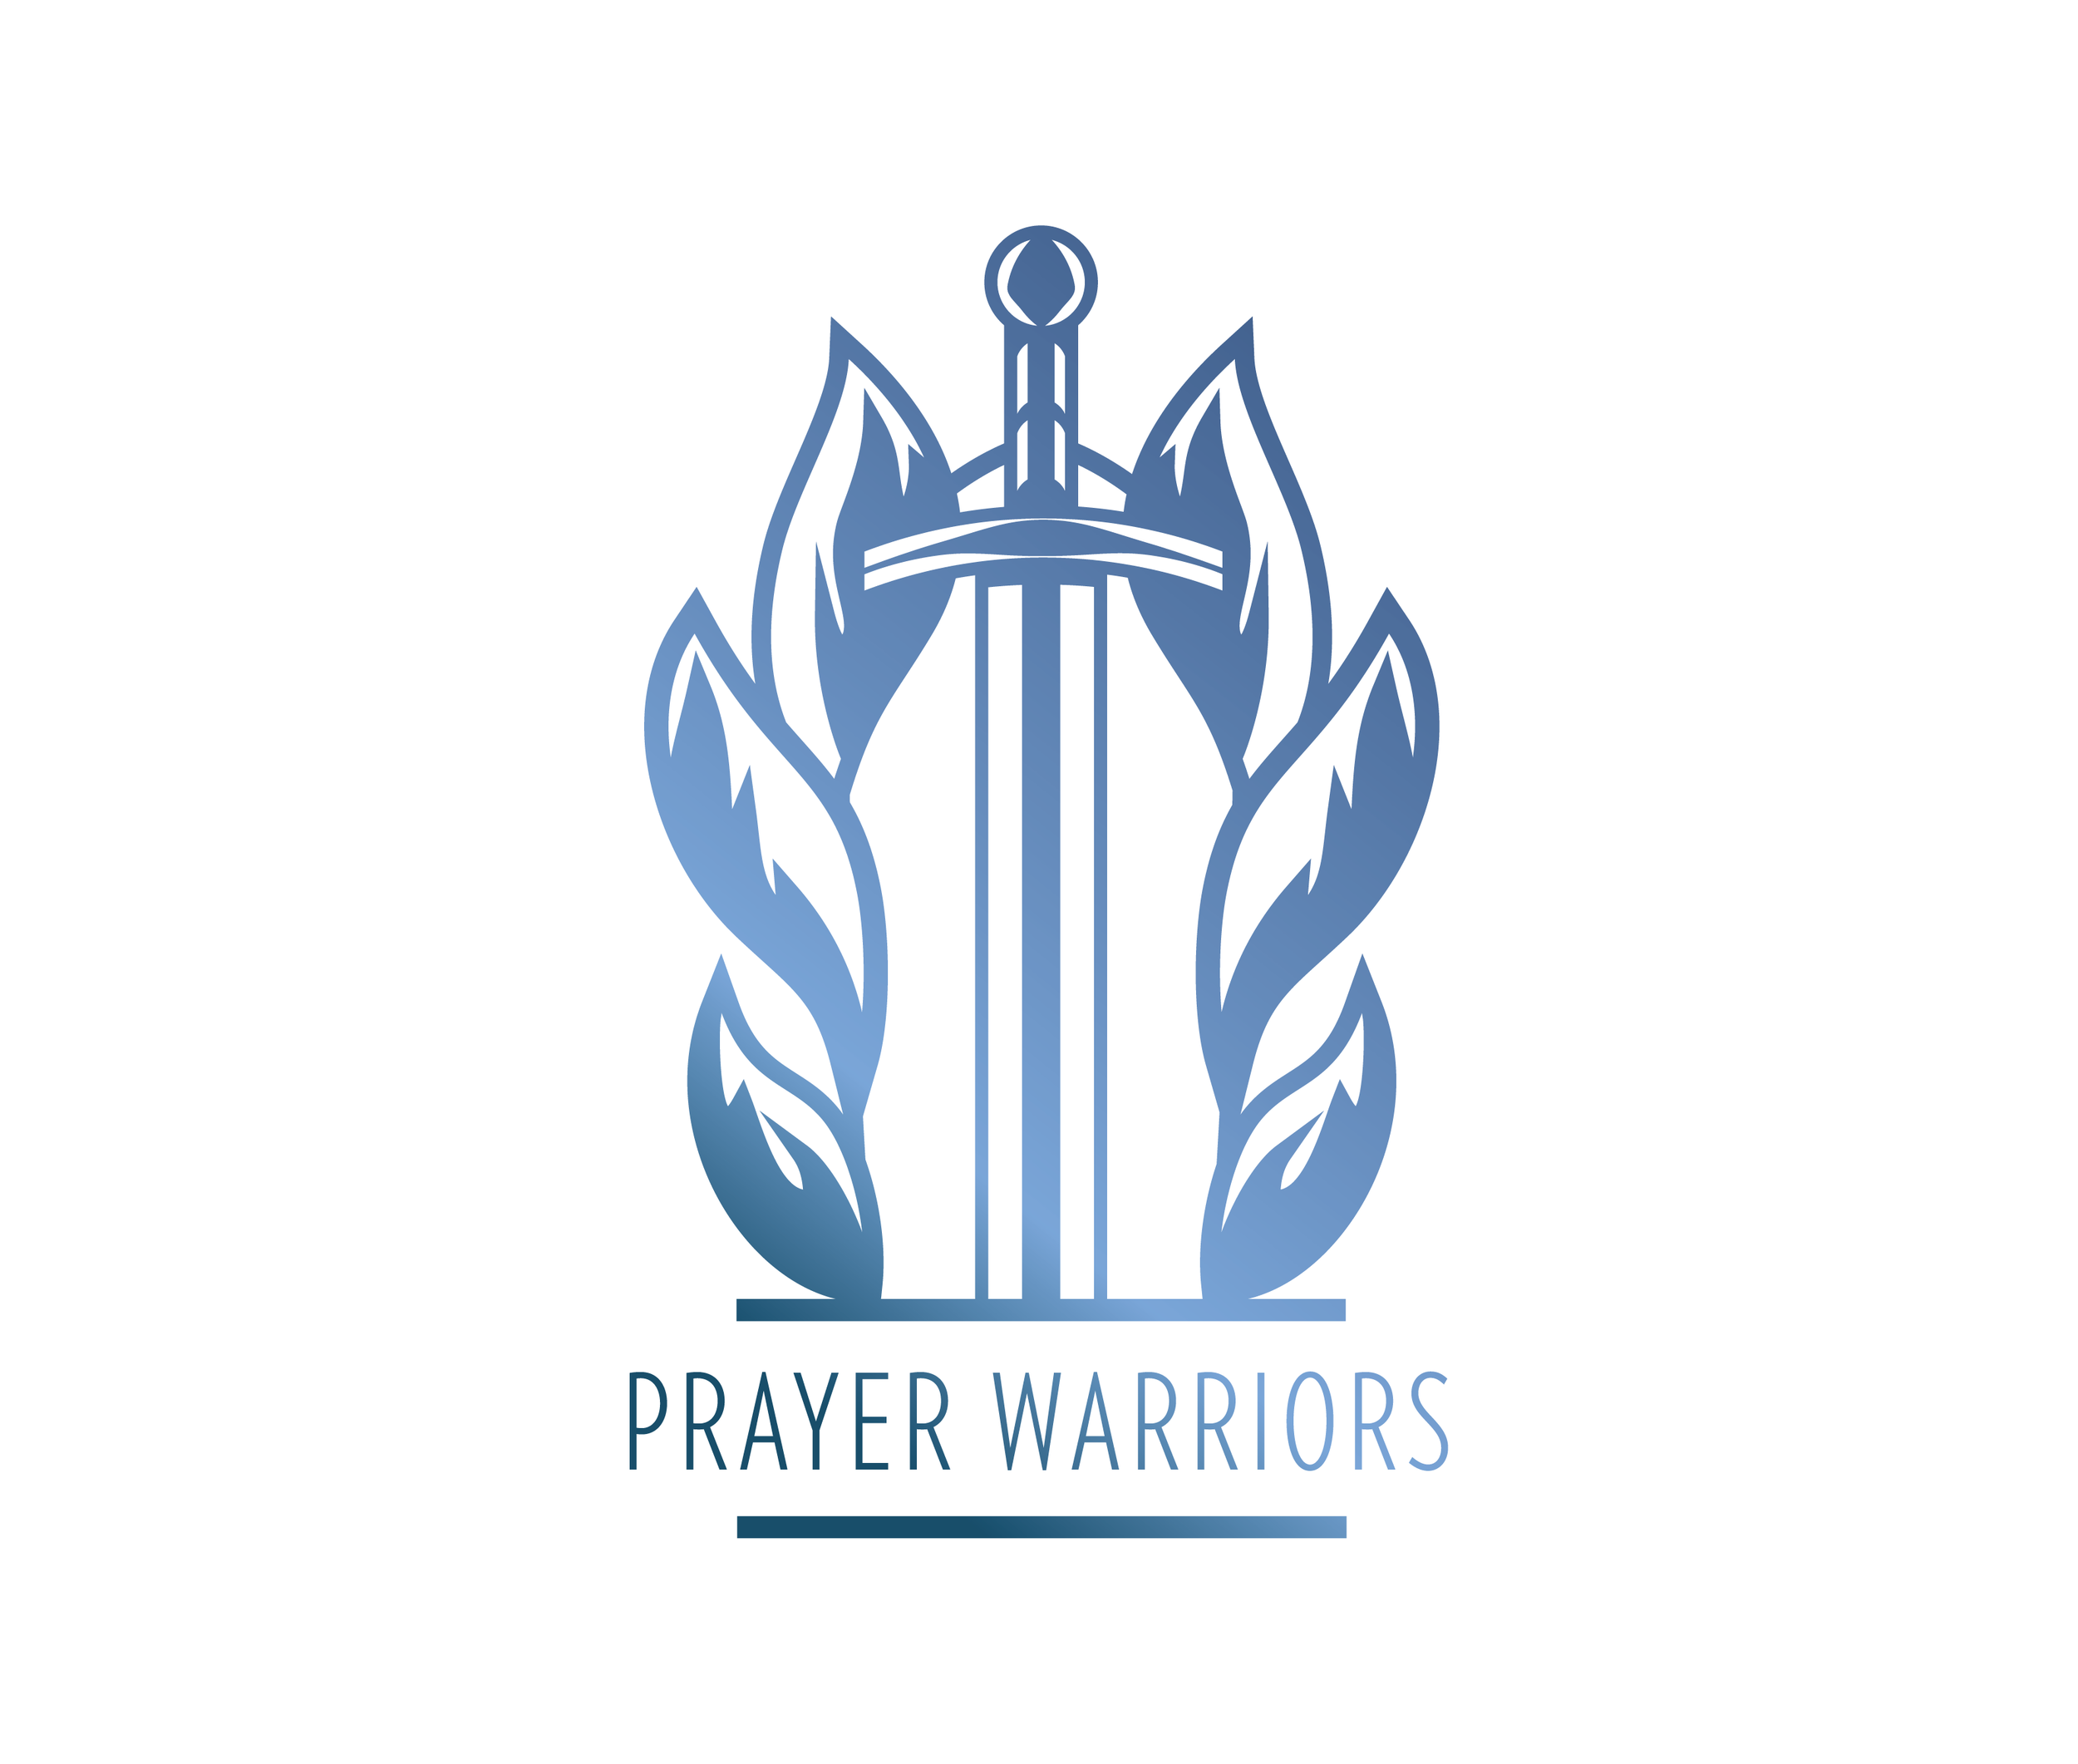 PrayerWarriors_Colors-05.png